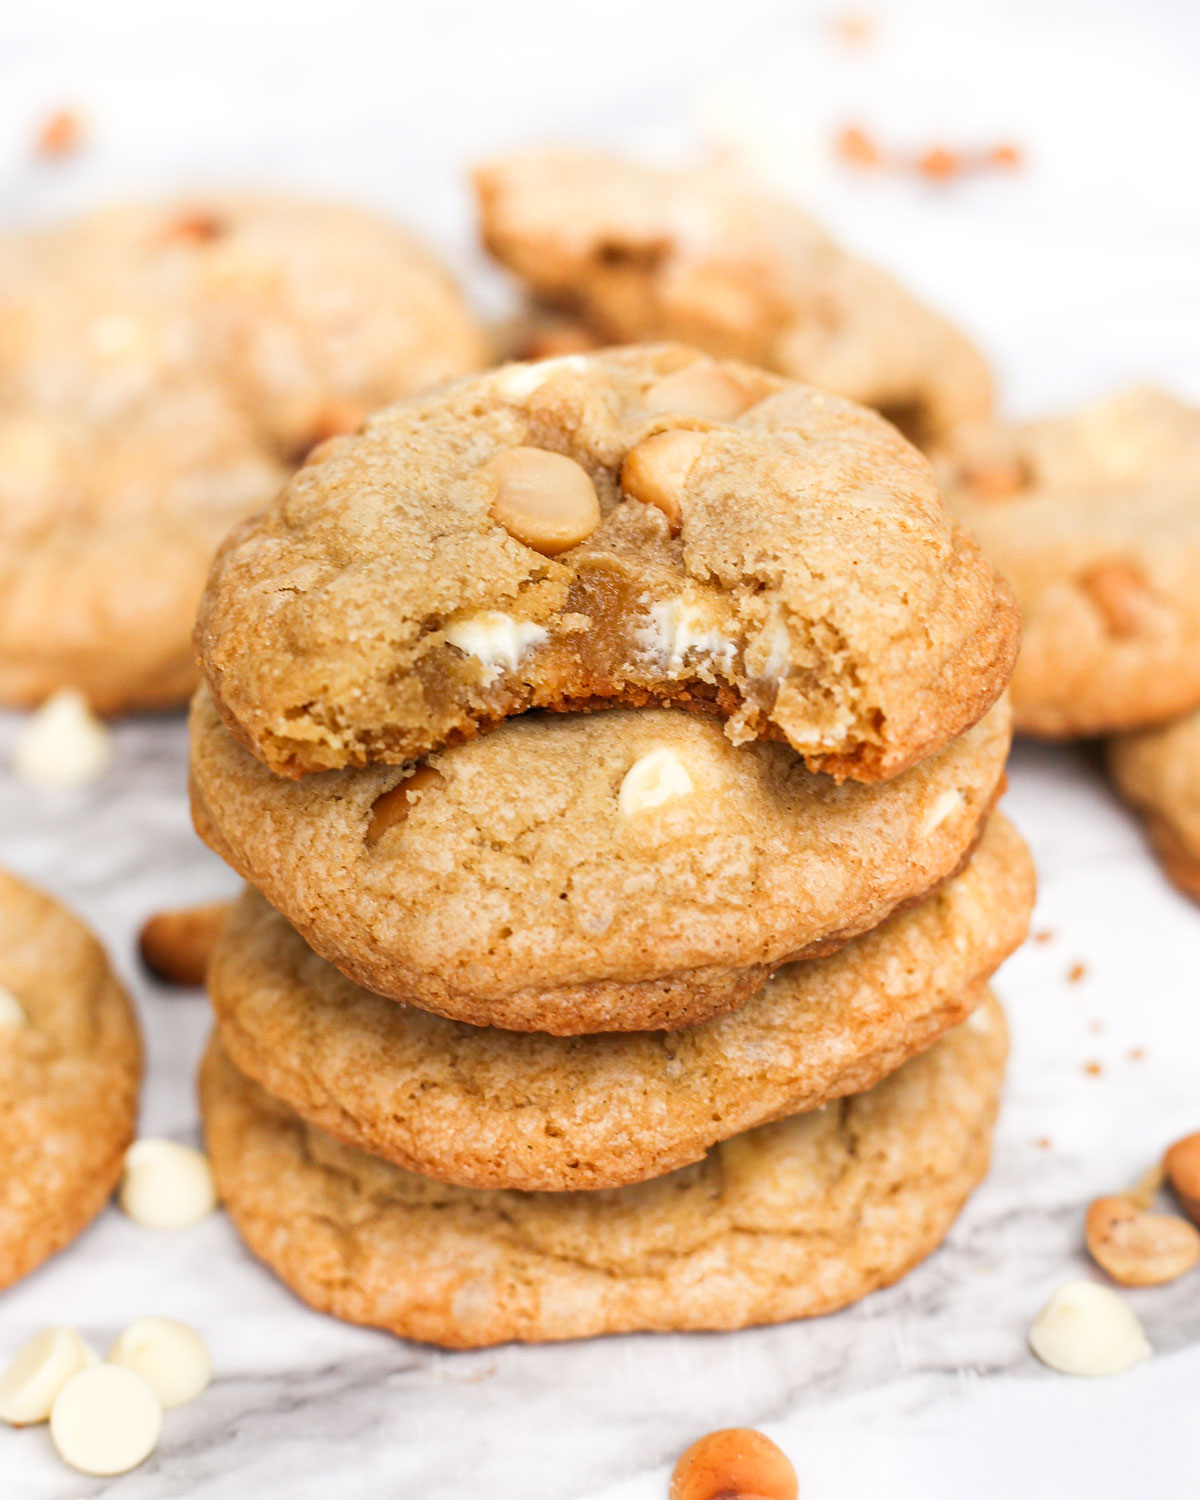 a stack of white chocolate macadamia nut cookies with a bite taken out of the top cookie